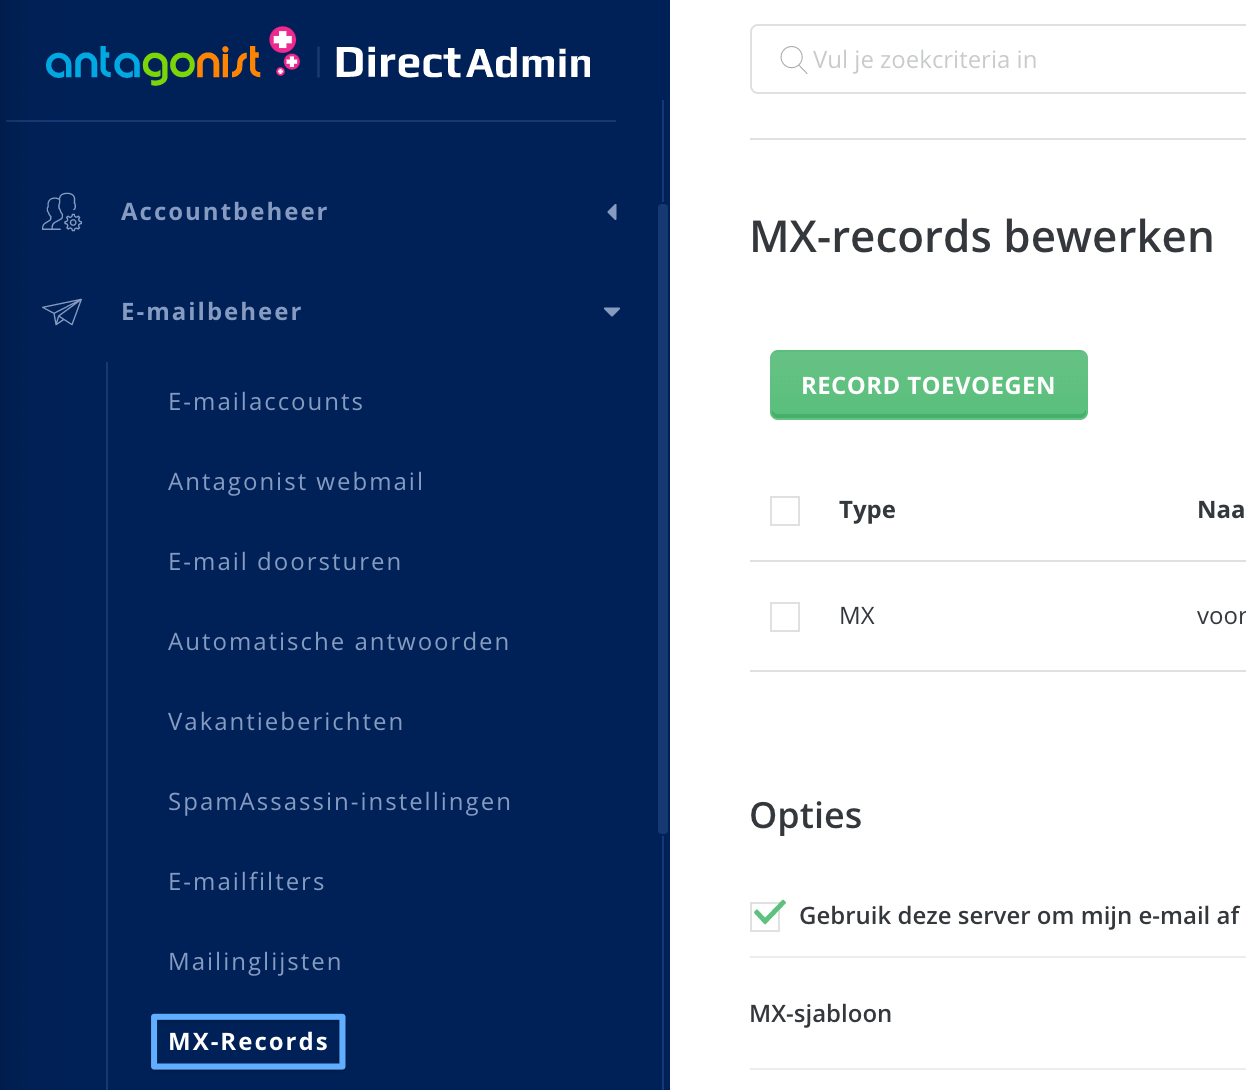 MX-records beheren in DirectAdmin.